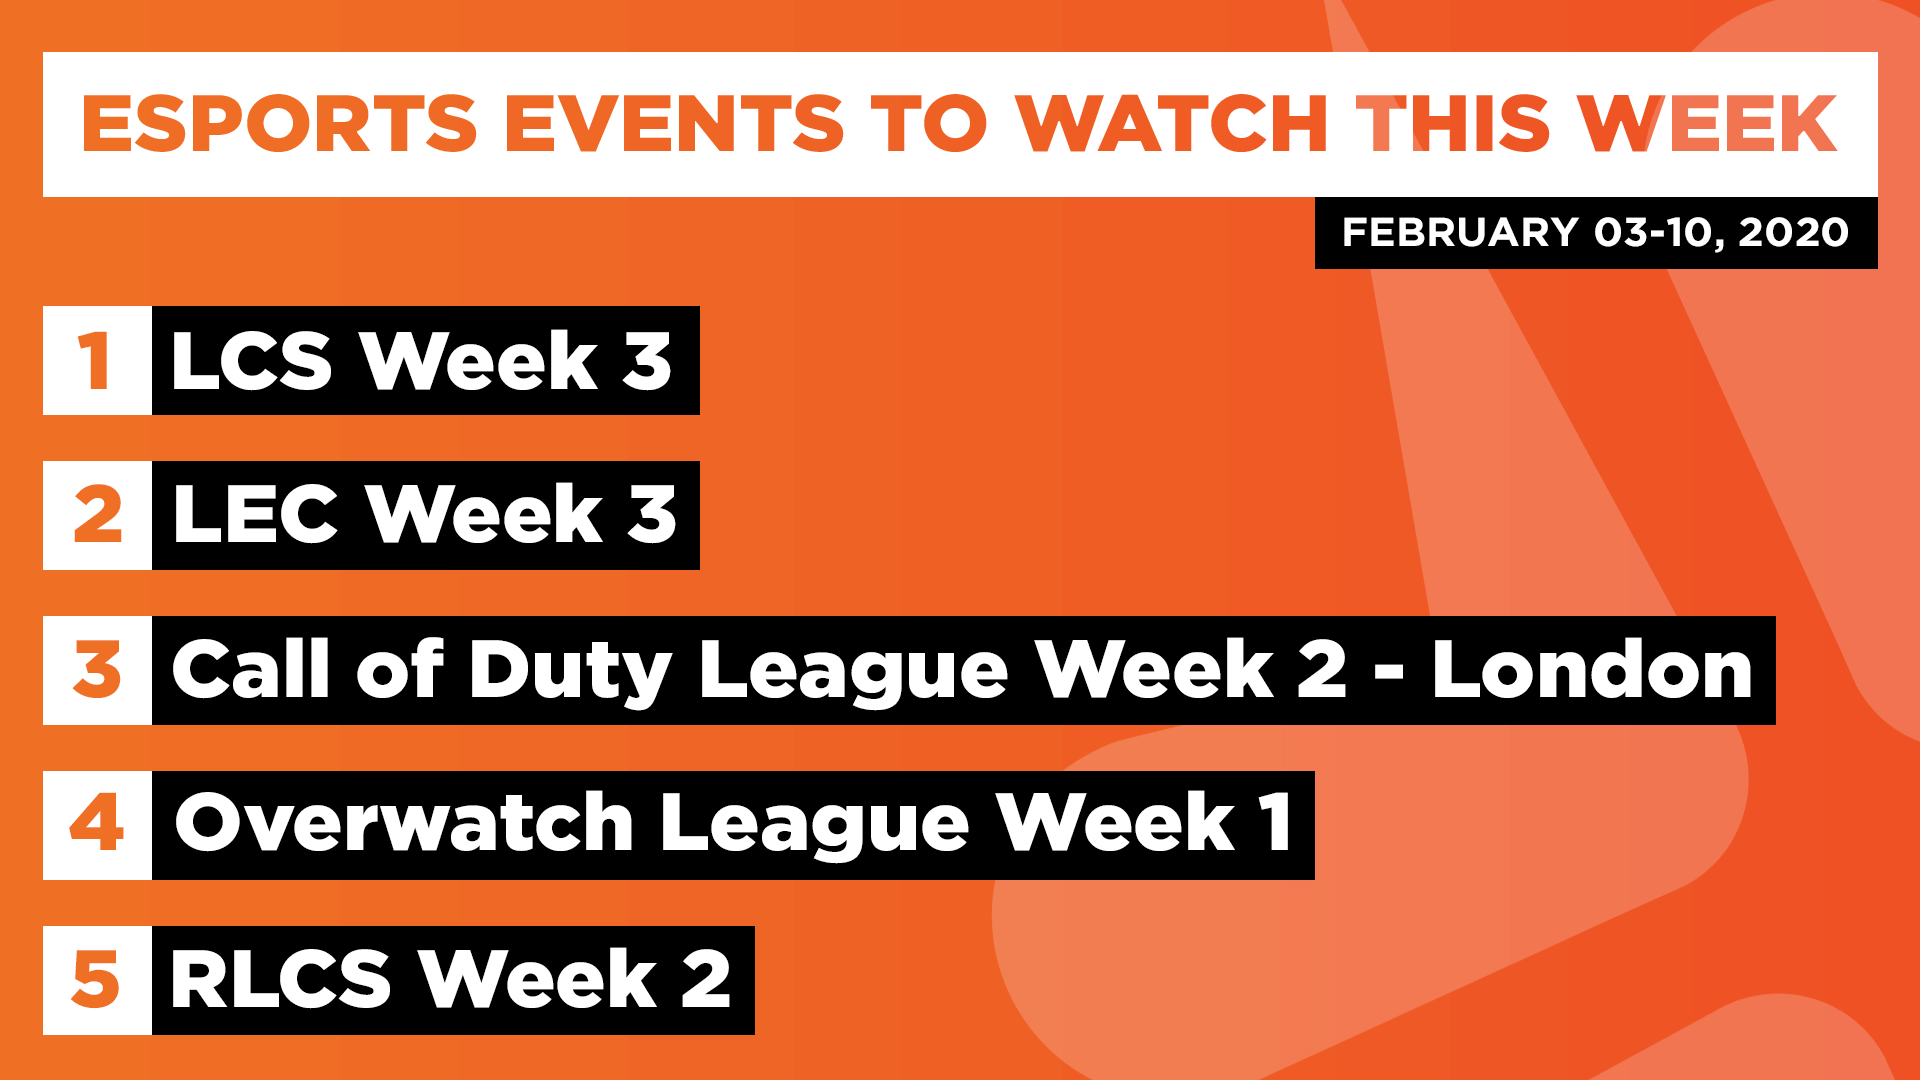 Esports Events to Watch This Week (Feb 3-10, 2020)